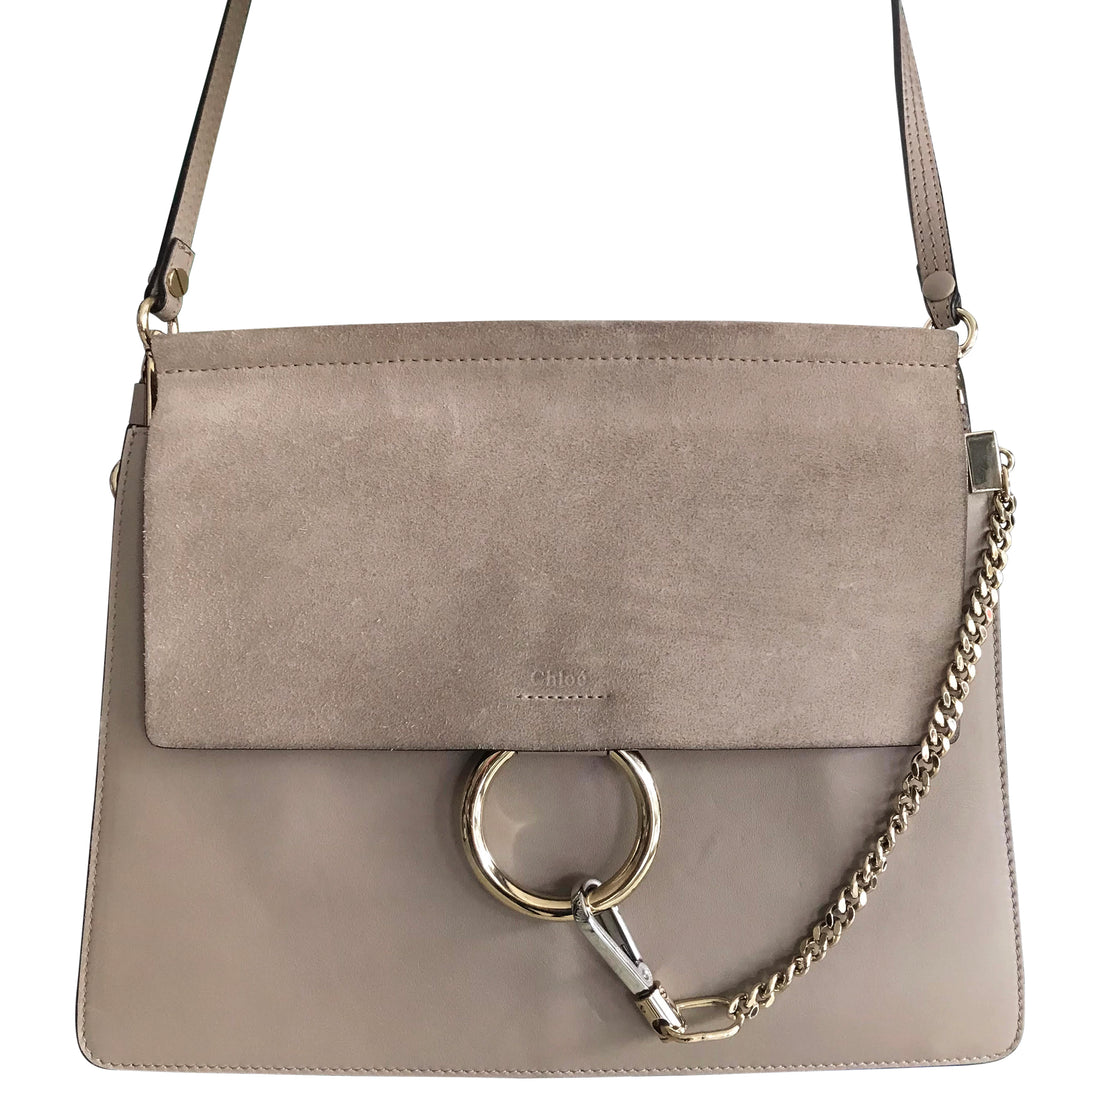 Chloe Medium Faye Suede and Leather Shoulder Bag